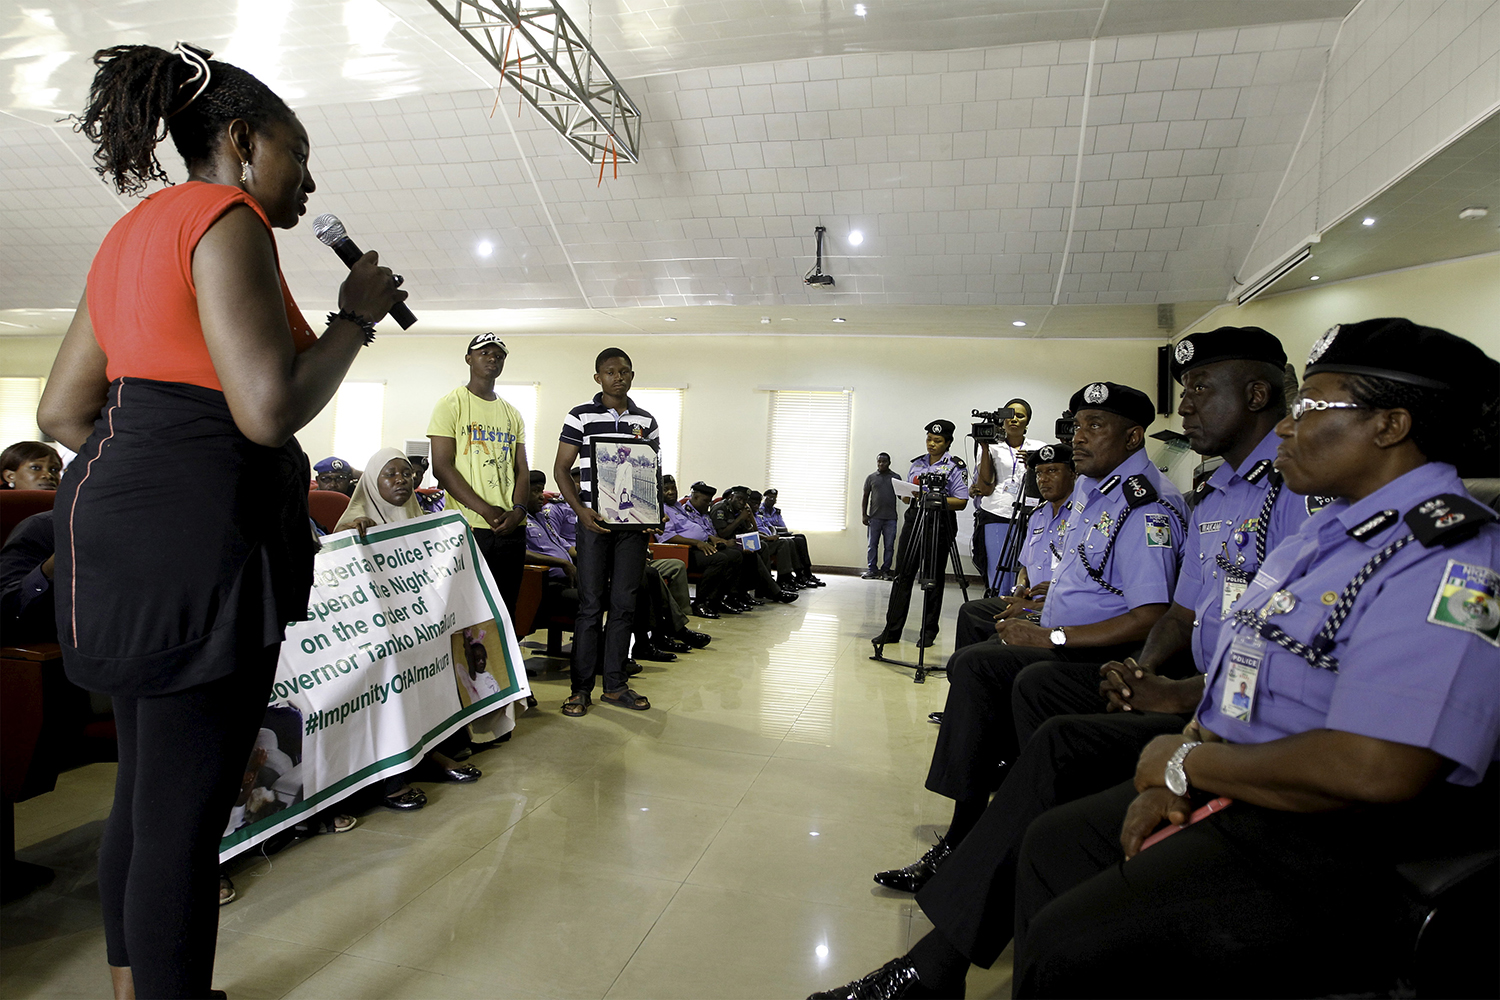 A woman speaks against police violence in Abuja, Nigeria.